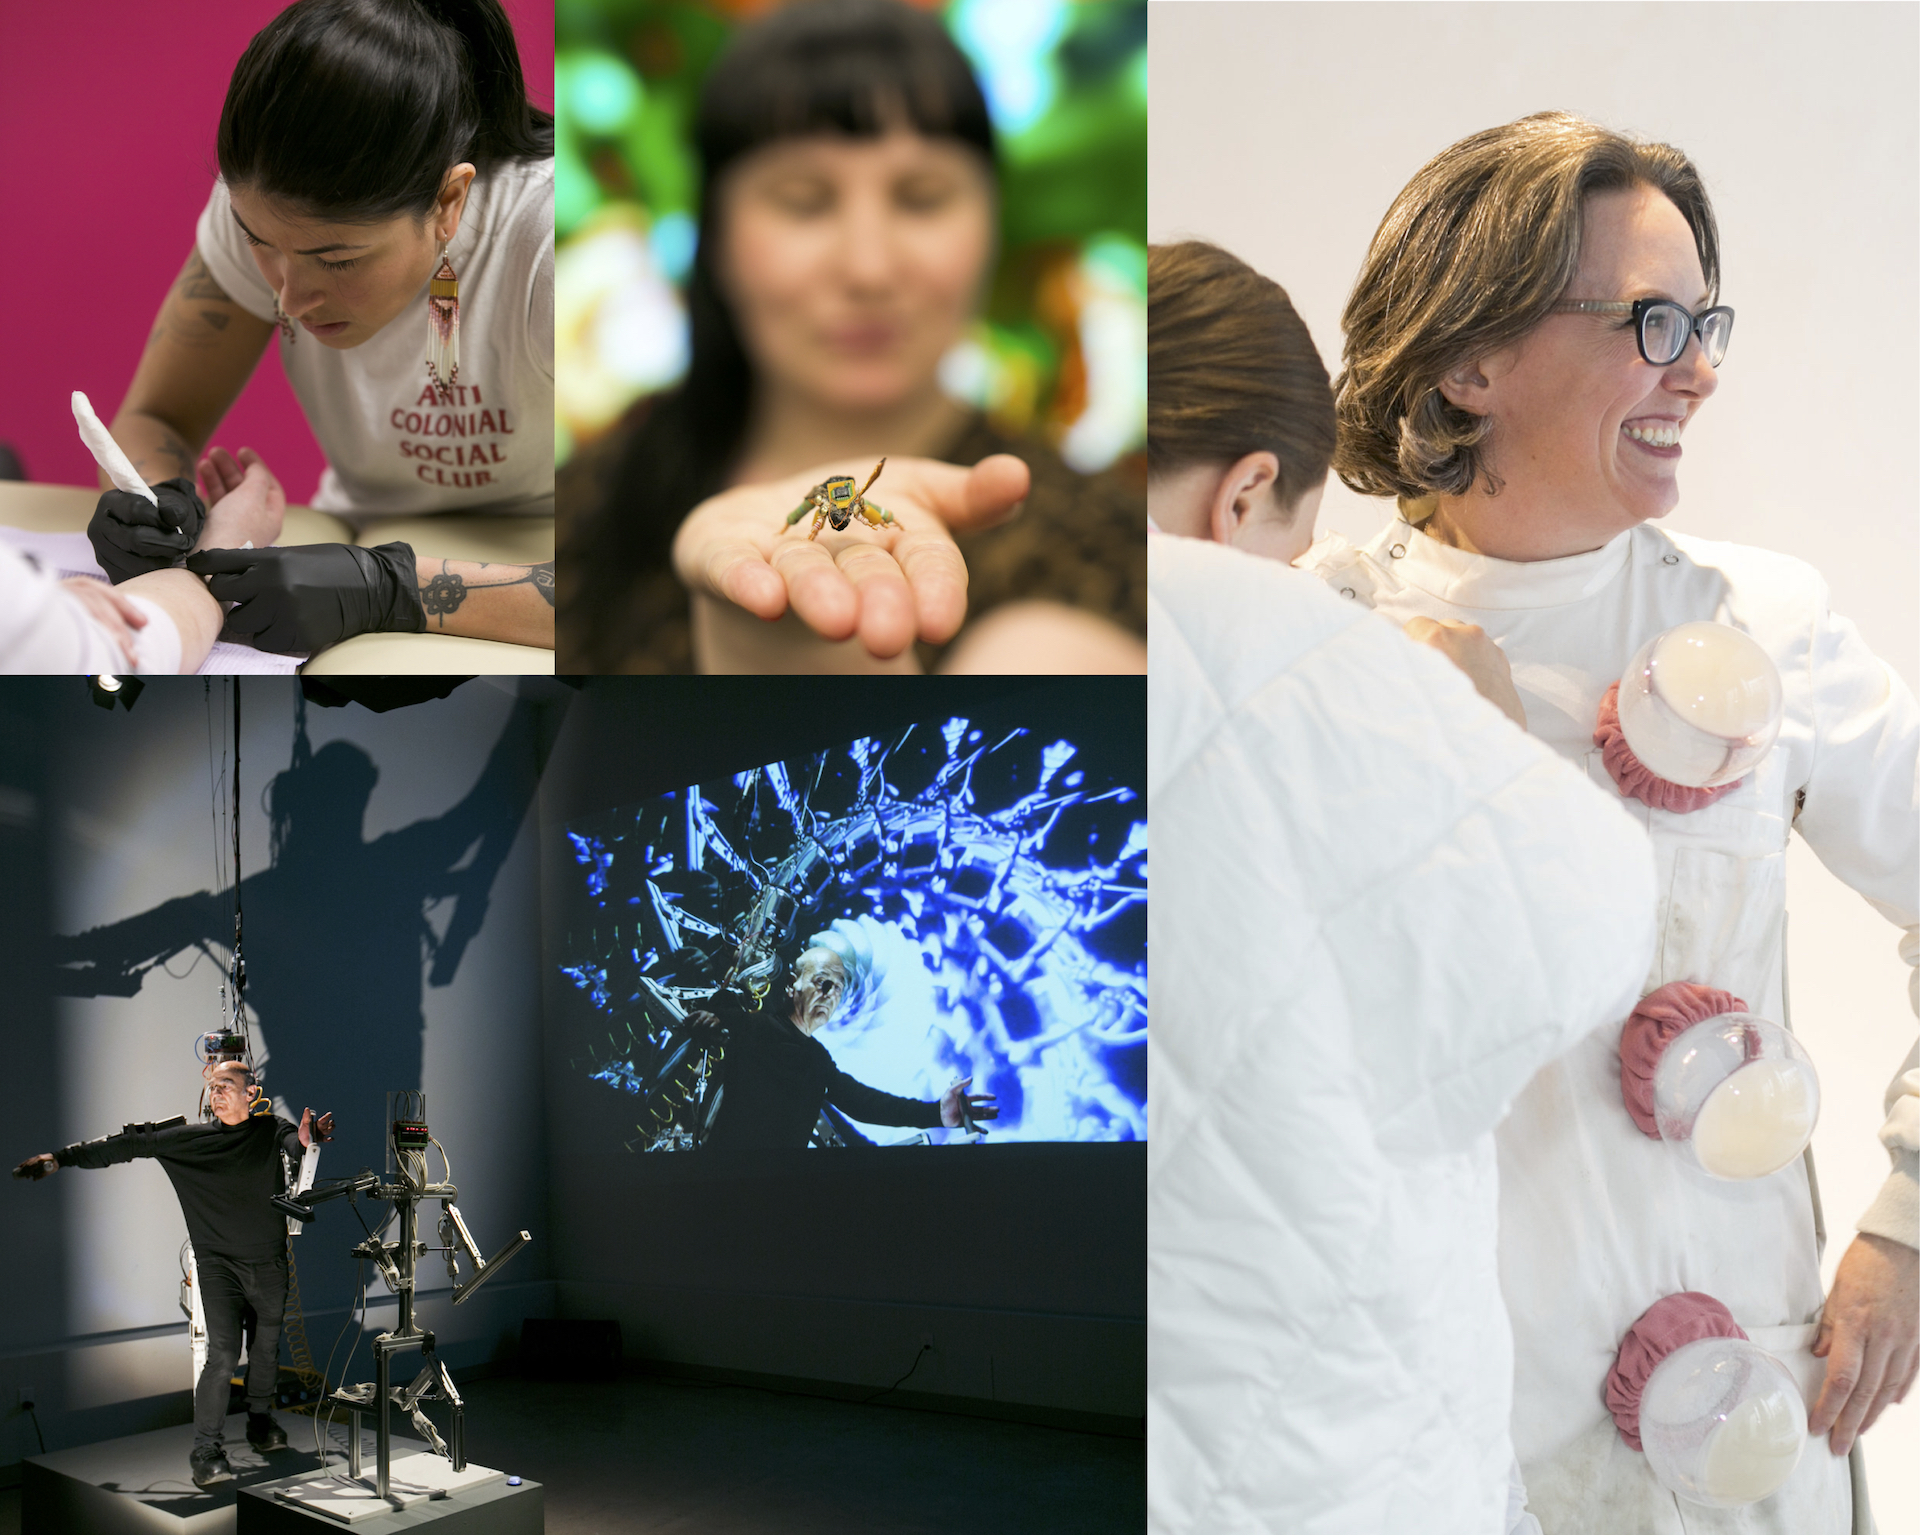 """IOTA Institute's Bio Art Series, 2019, artists depicted (clockwise): Earthline Tattoo Collective (participant: Quill Christie-Peters), Ruth Marsh """"Cyberhive"""", Jennifer Willet """"Untitled: Travelling Laboratory Coat"""", Stelarc """"StickMan/miniStickMan"""", photo credit: Chantal Routhier Photography"""